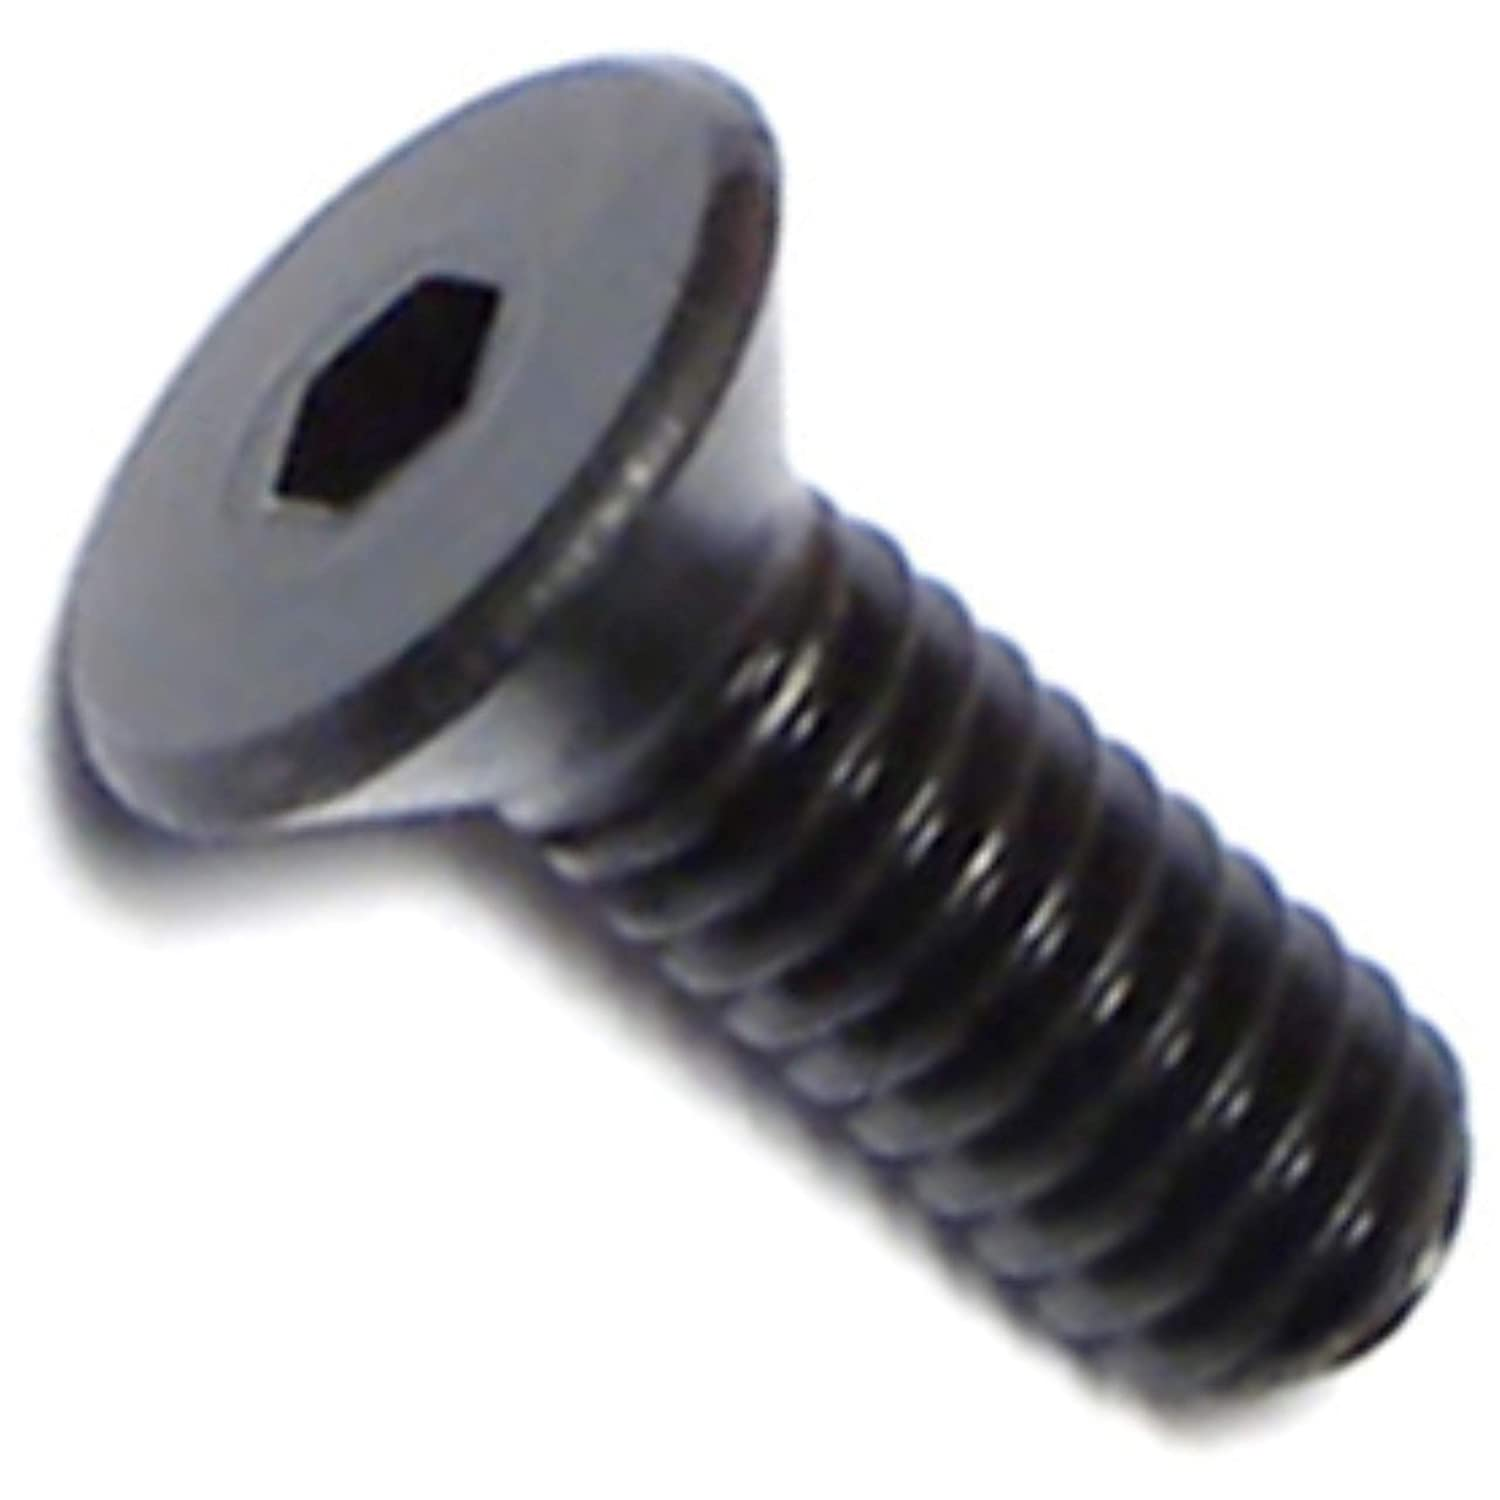 Hard-to-Find Fastener 014973305659 Flat Socket Cap Screws Piece-10 8-32 x 1//2